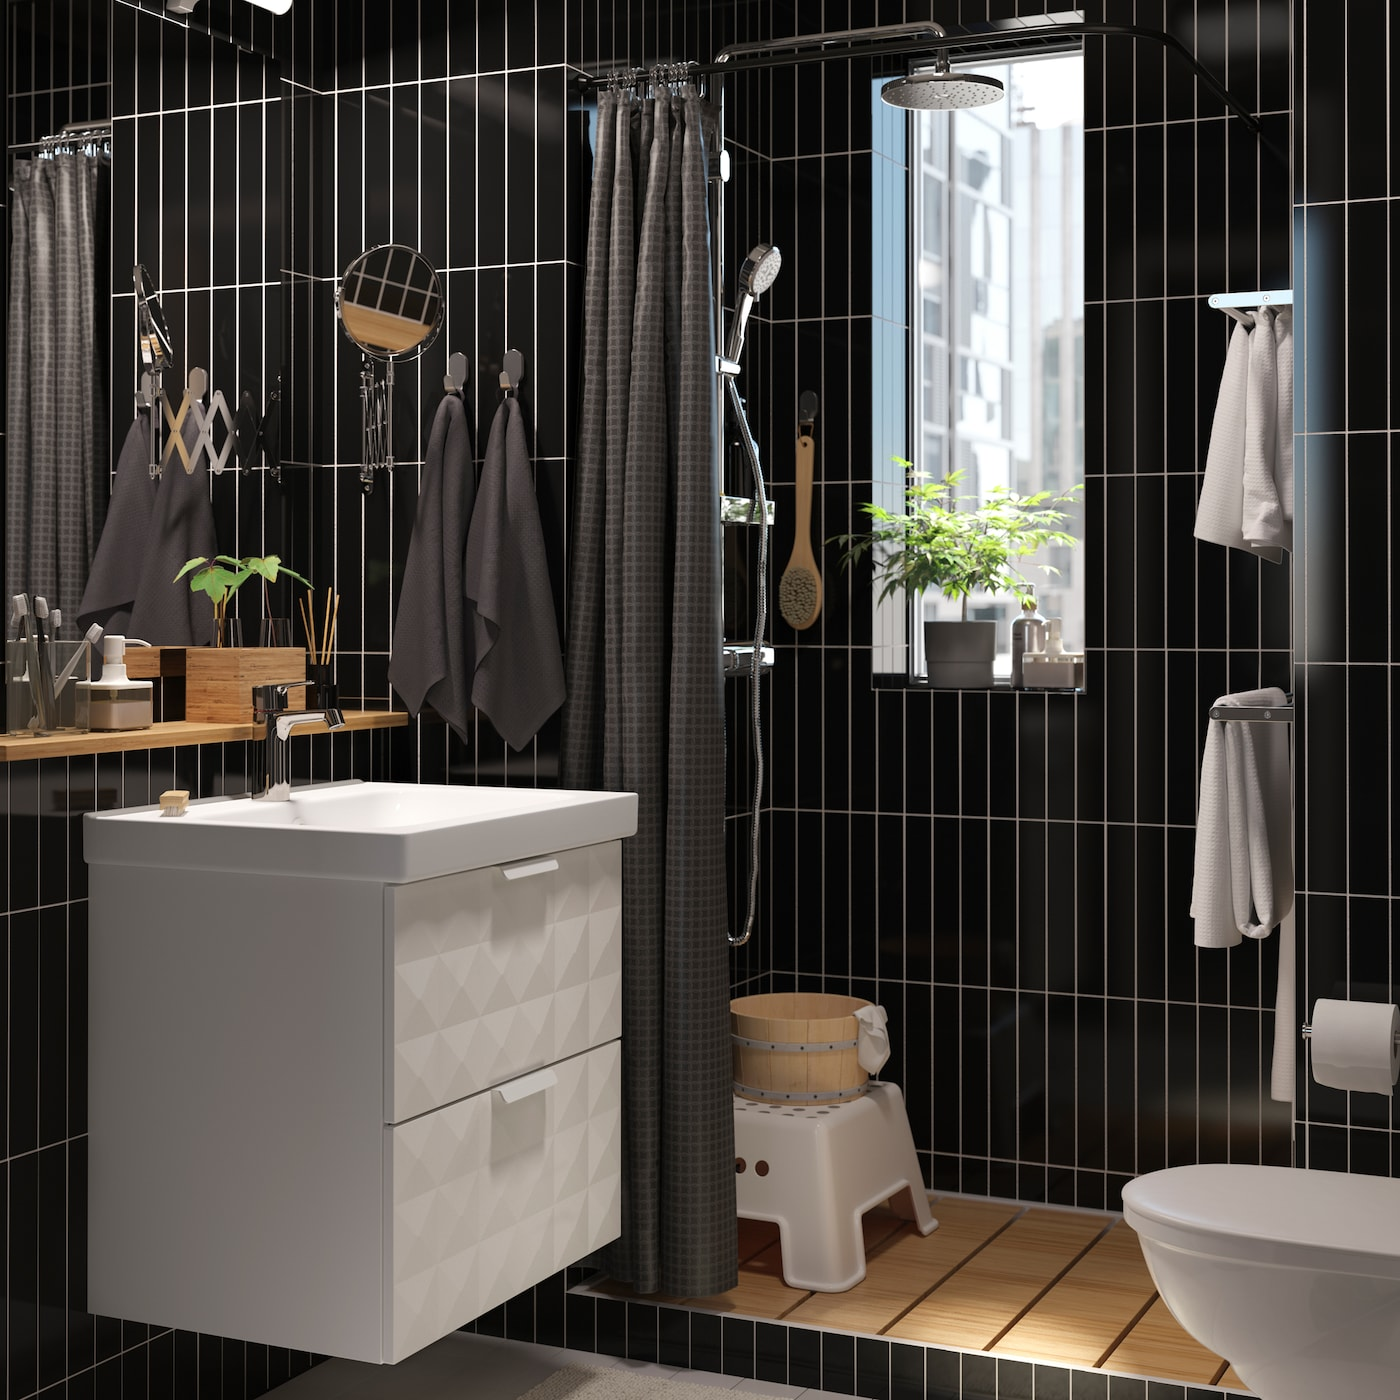 Go bold with a black-tiled small space bathroom and optimise storage space with GODMORGON wash basin with two deep drawers and wall cabinet with 5 shelves to store all your bathroom tools.